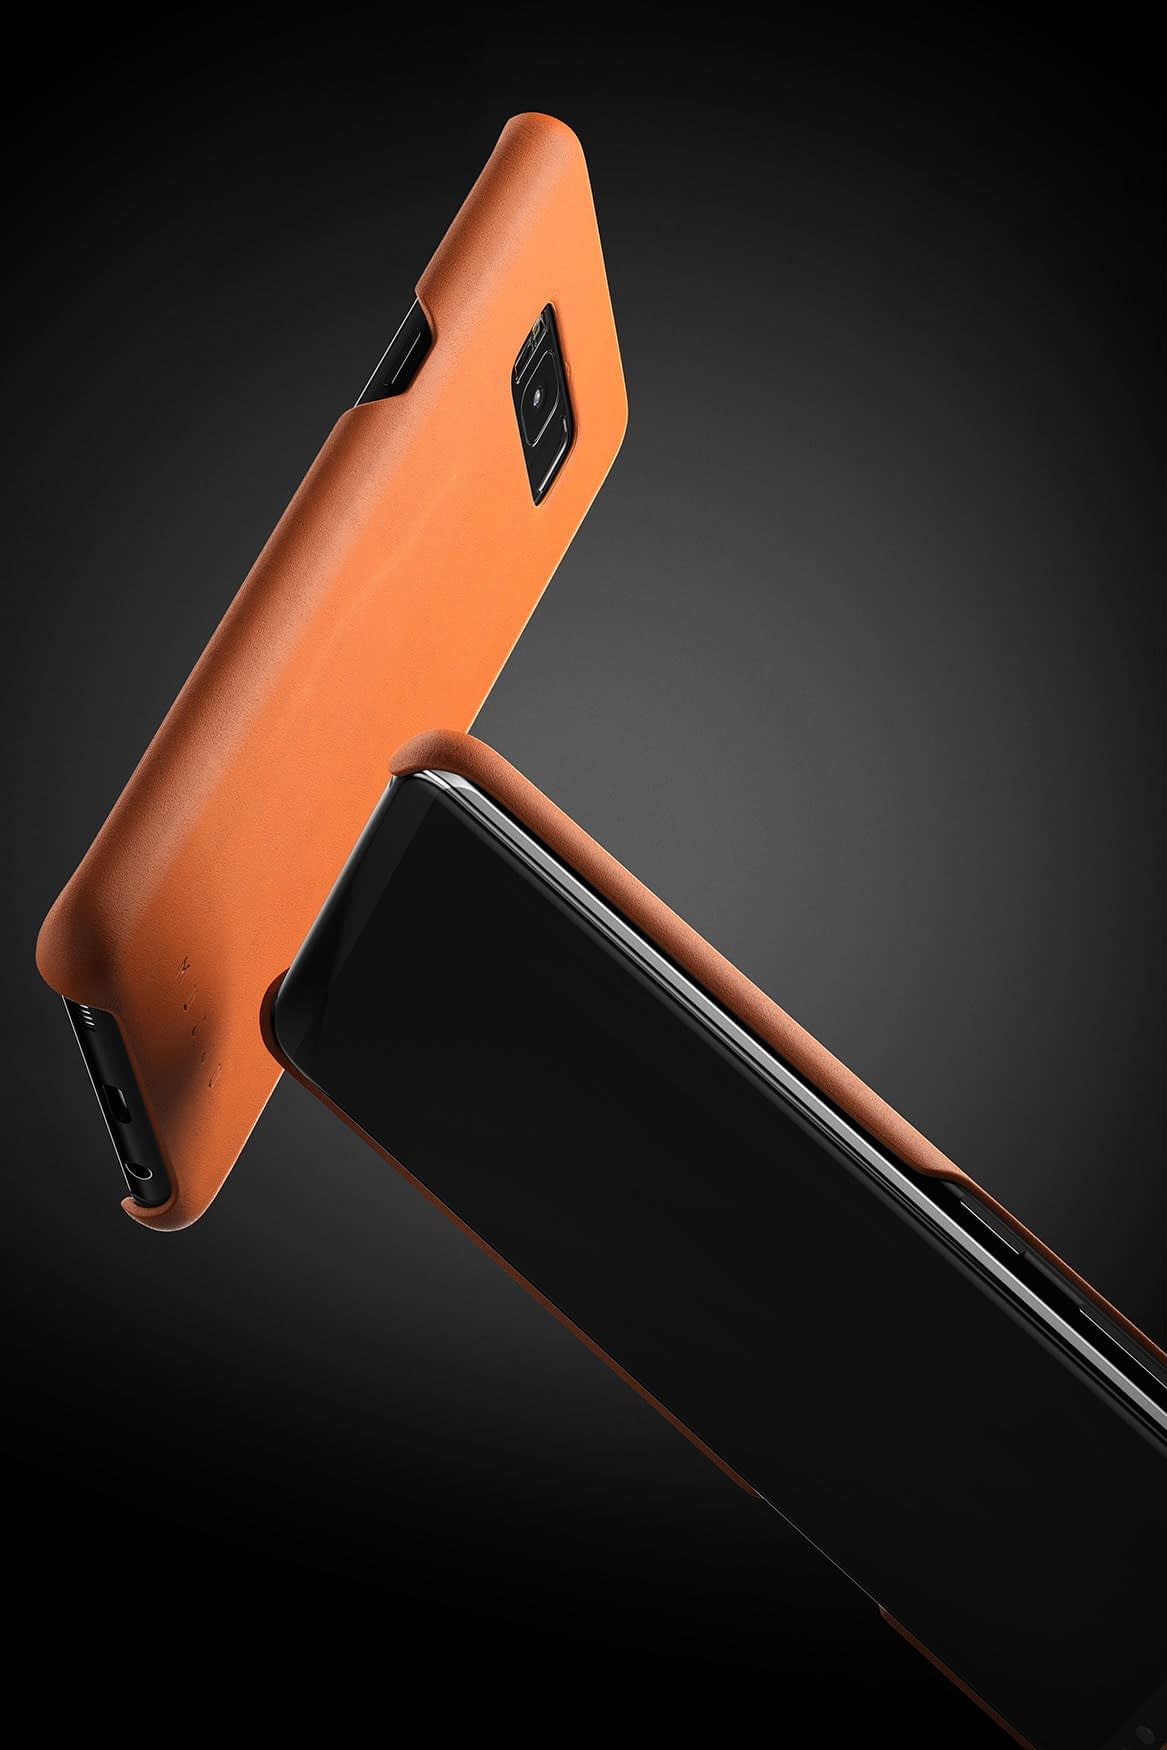 Leather case for Galaxy S8 Saddle Tan 5 1